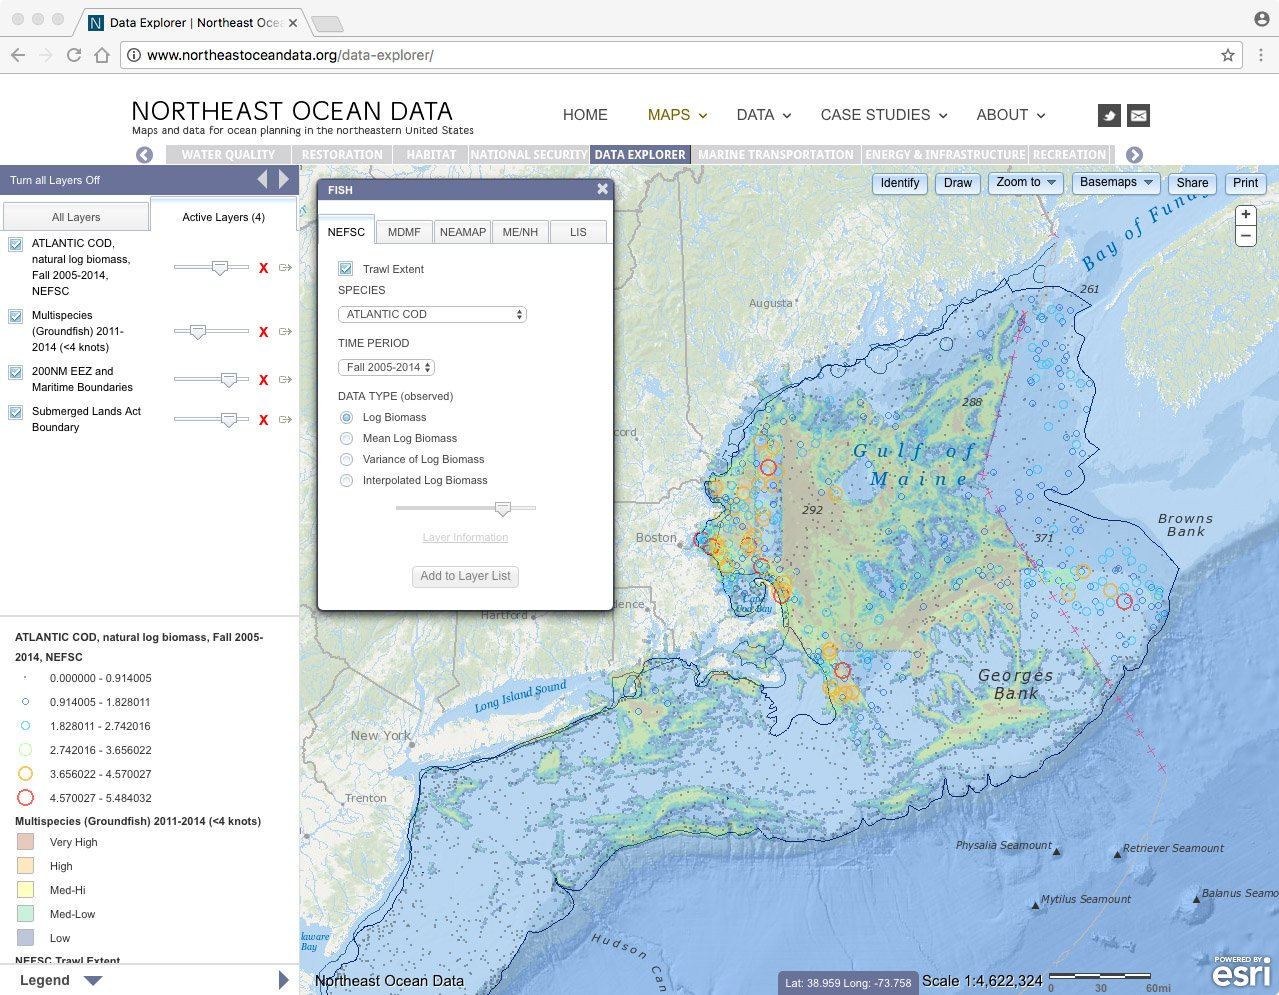 Screenshot of cod biomass (colored circles) overlaid with groundfish fishing vessel activity